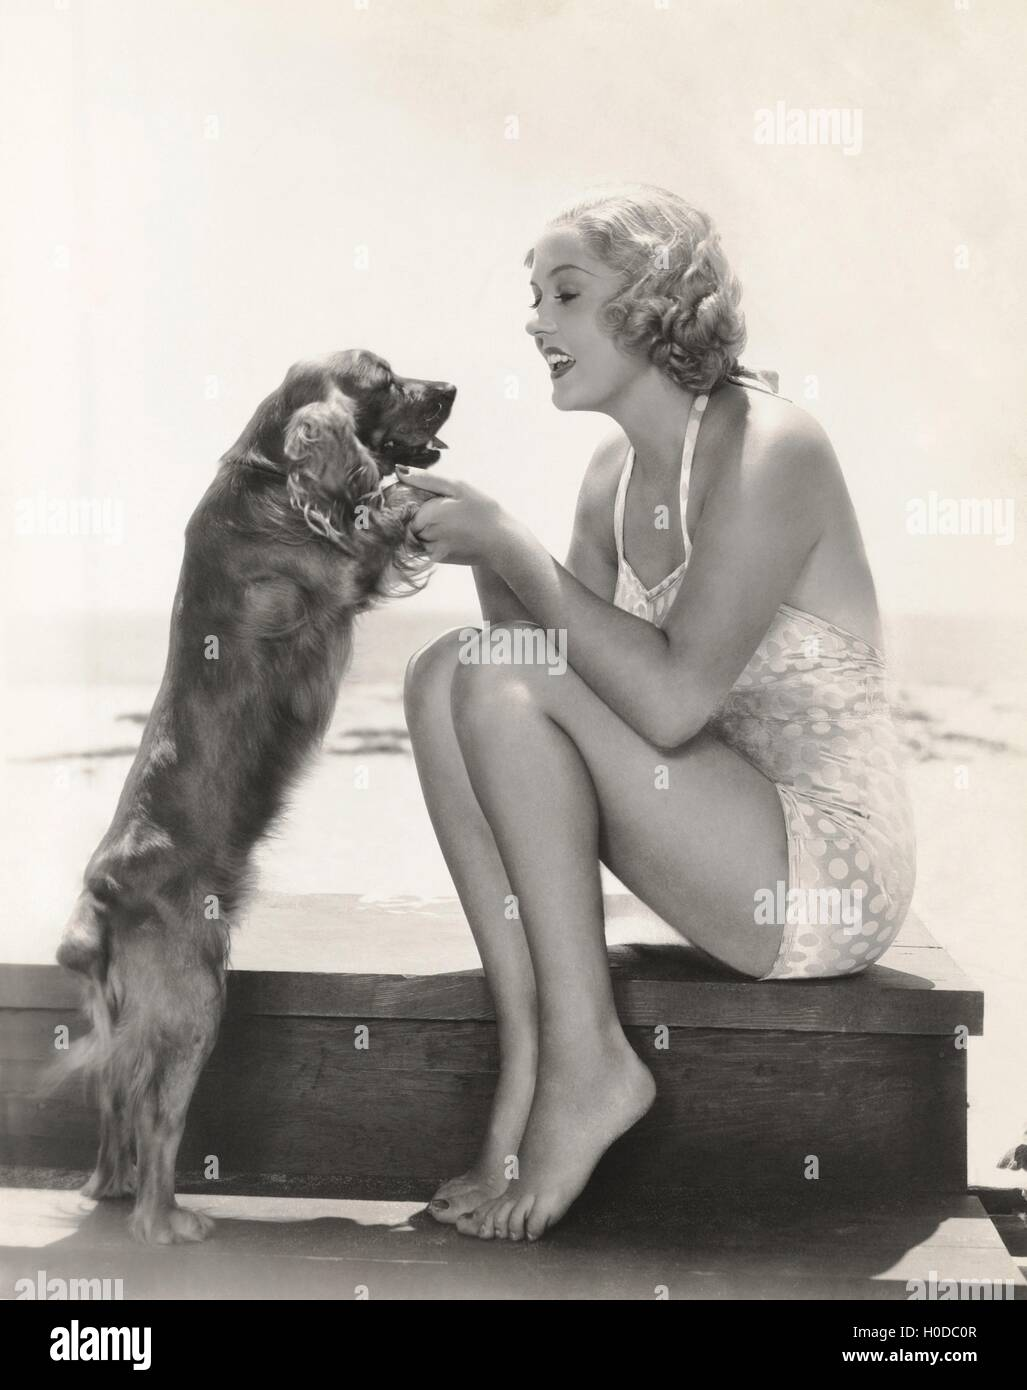 Young woman playing with Cocker Spaniel at beach - Stock Image